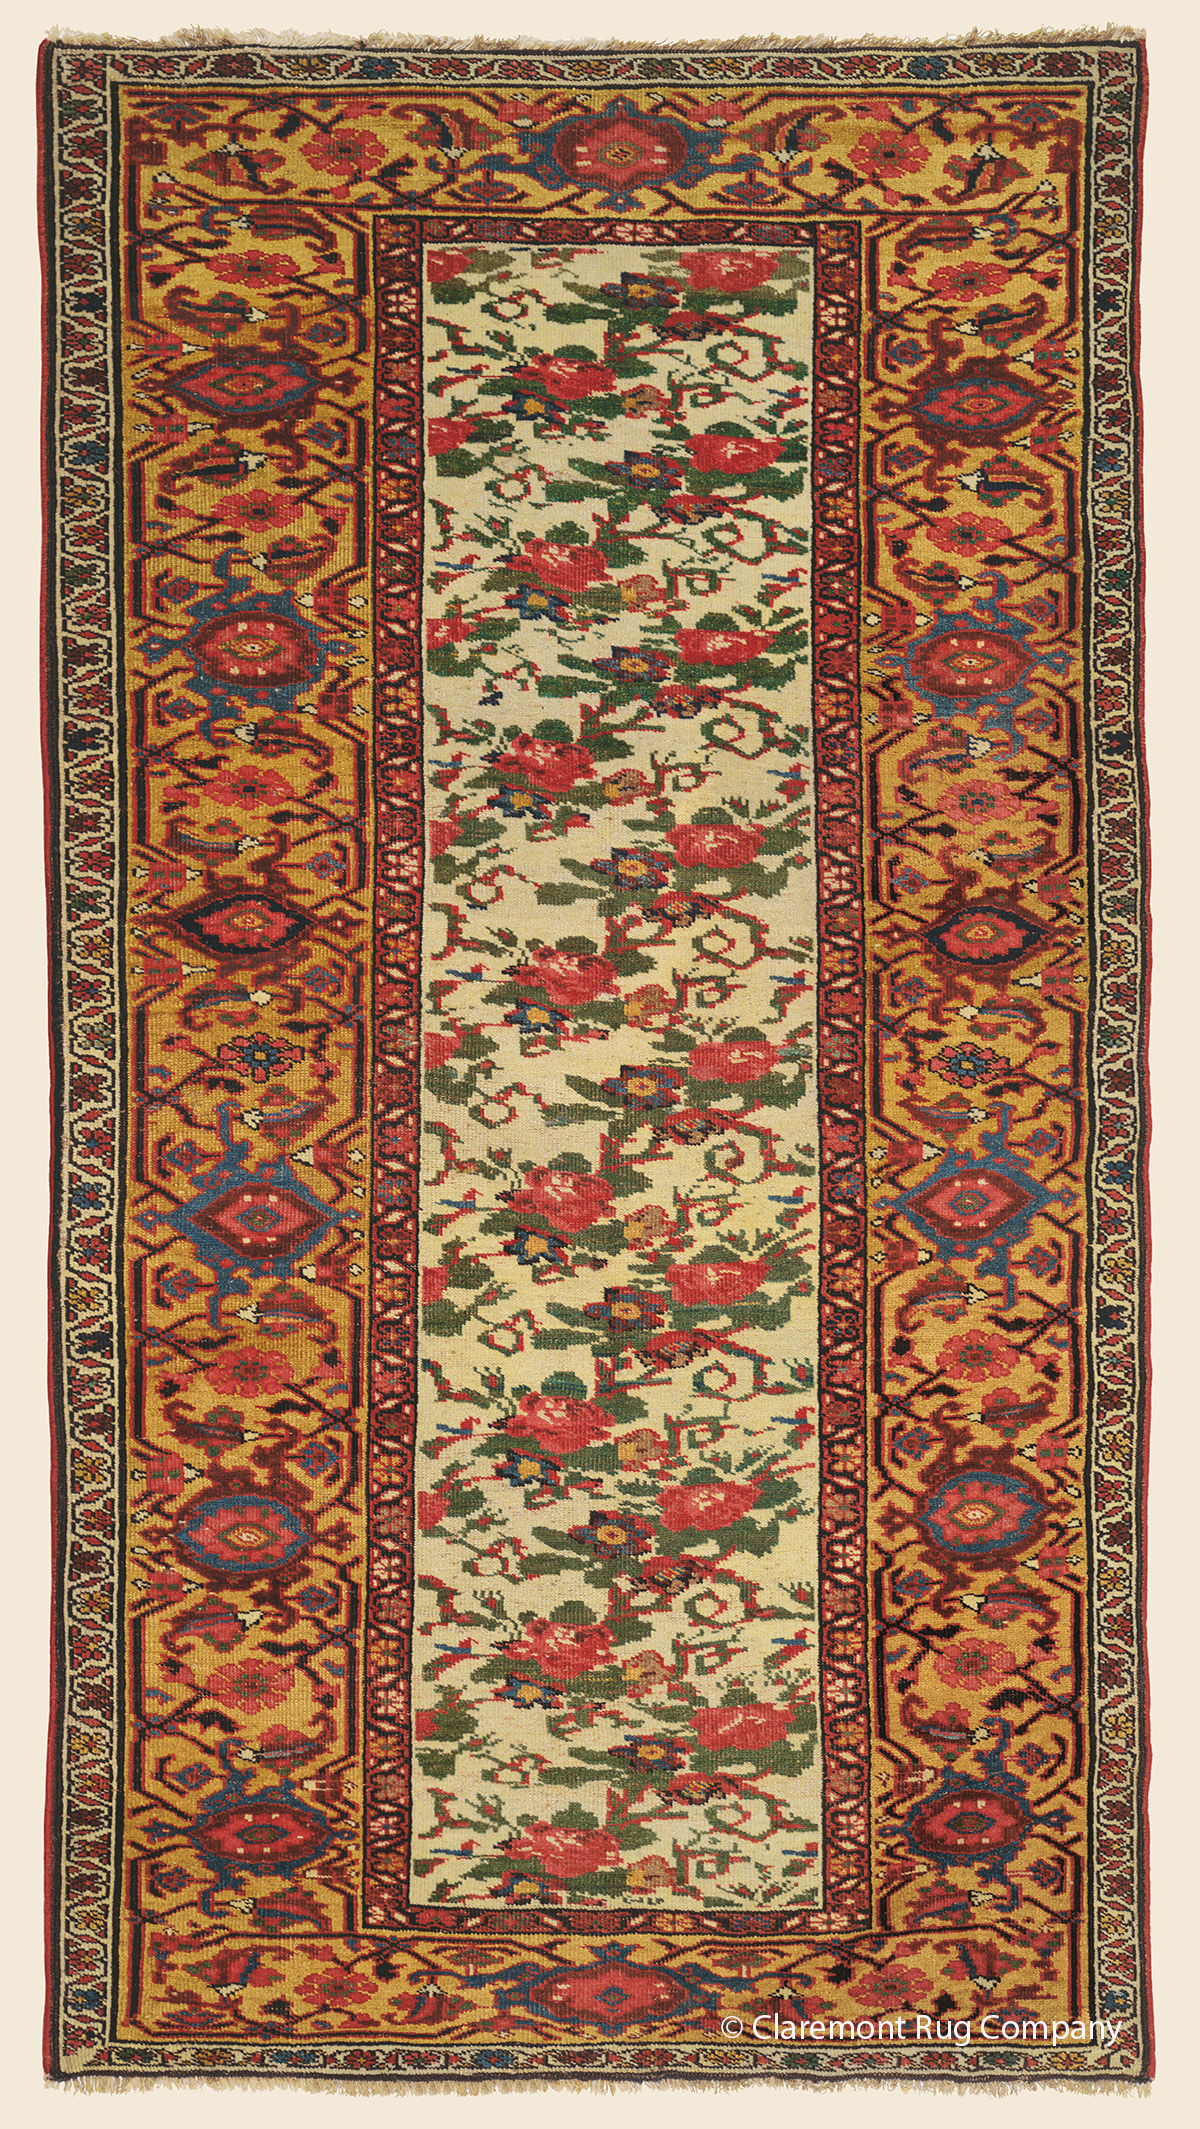 19th Century Bijar (Bidjar) Antique Persian Rug with blossom and vinery border and Guli Farang motif